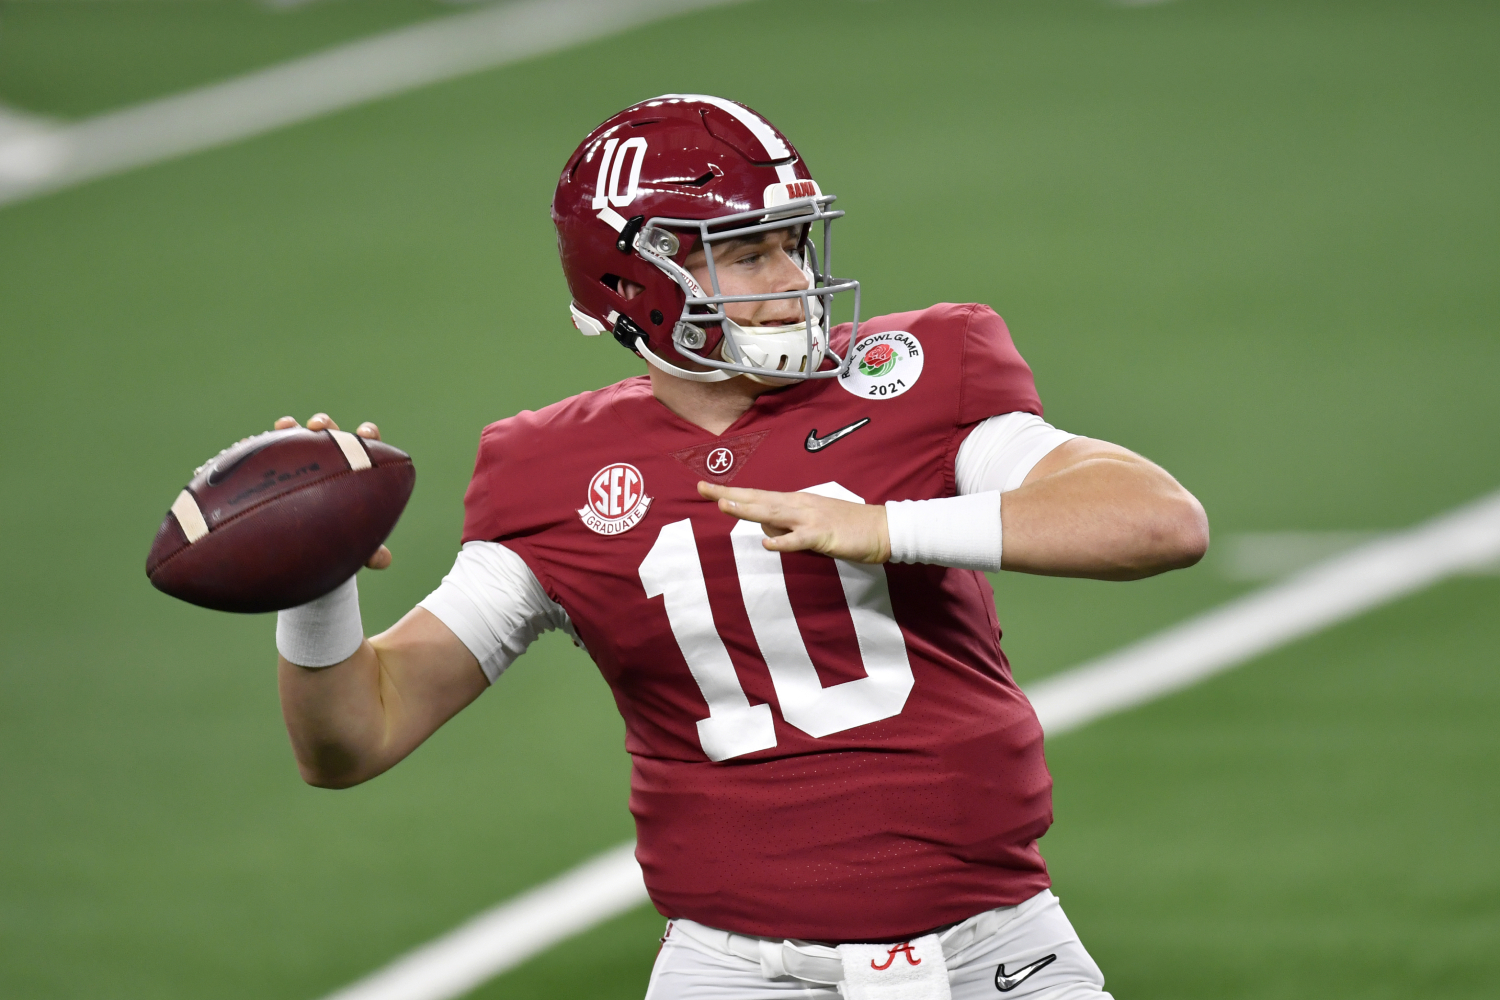 Mac Jones has had a great season with the Alabama Crimson Tide. He could have a great rookie season in the NFL if he goes to a specific team.